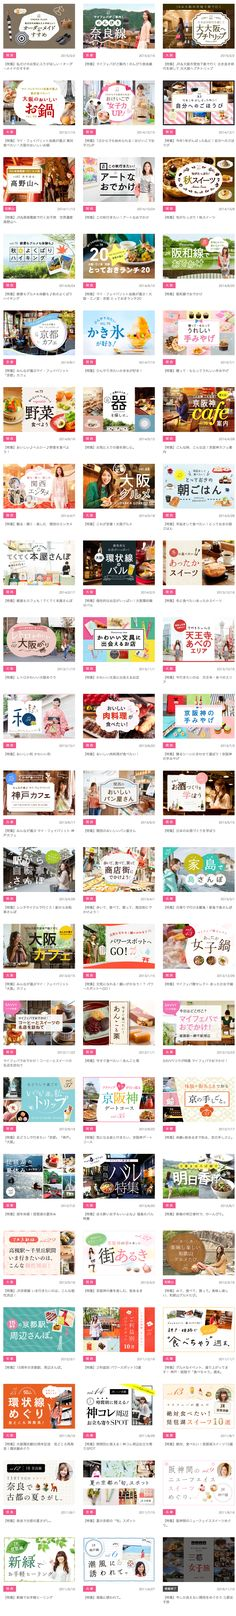 Web Design, Web Banner Design, Logo Design, Graphic Design, Japanese Design, Advertising Design, Feel Good, Layout, Website